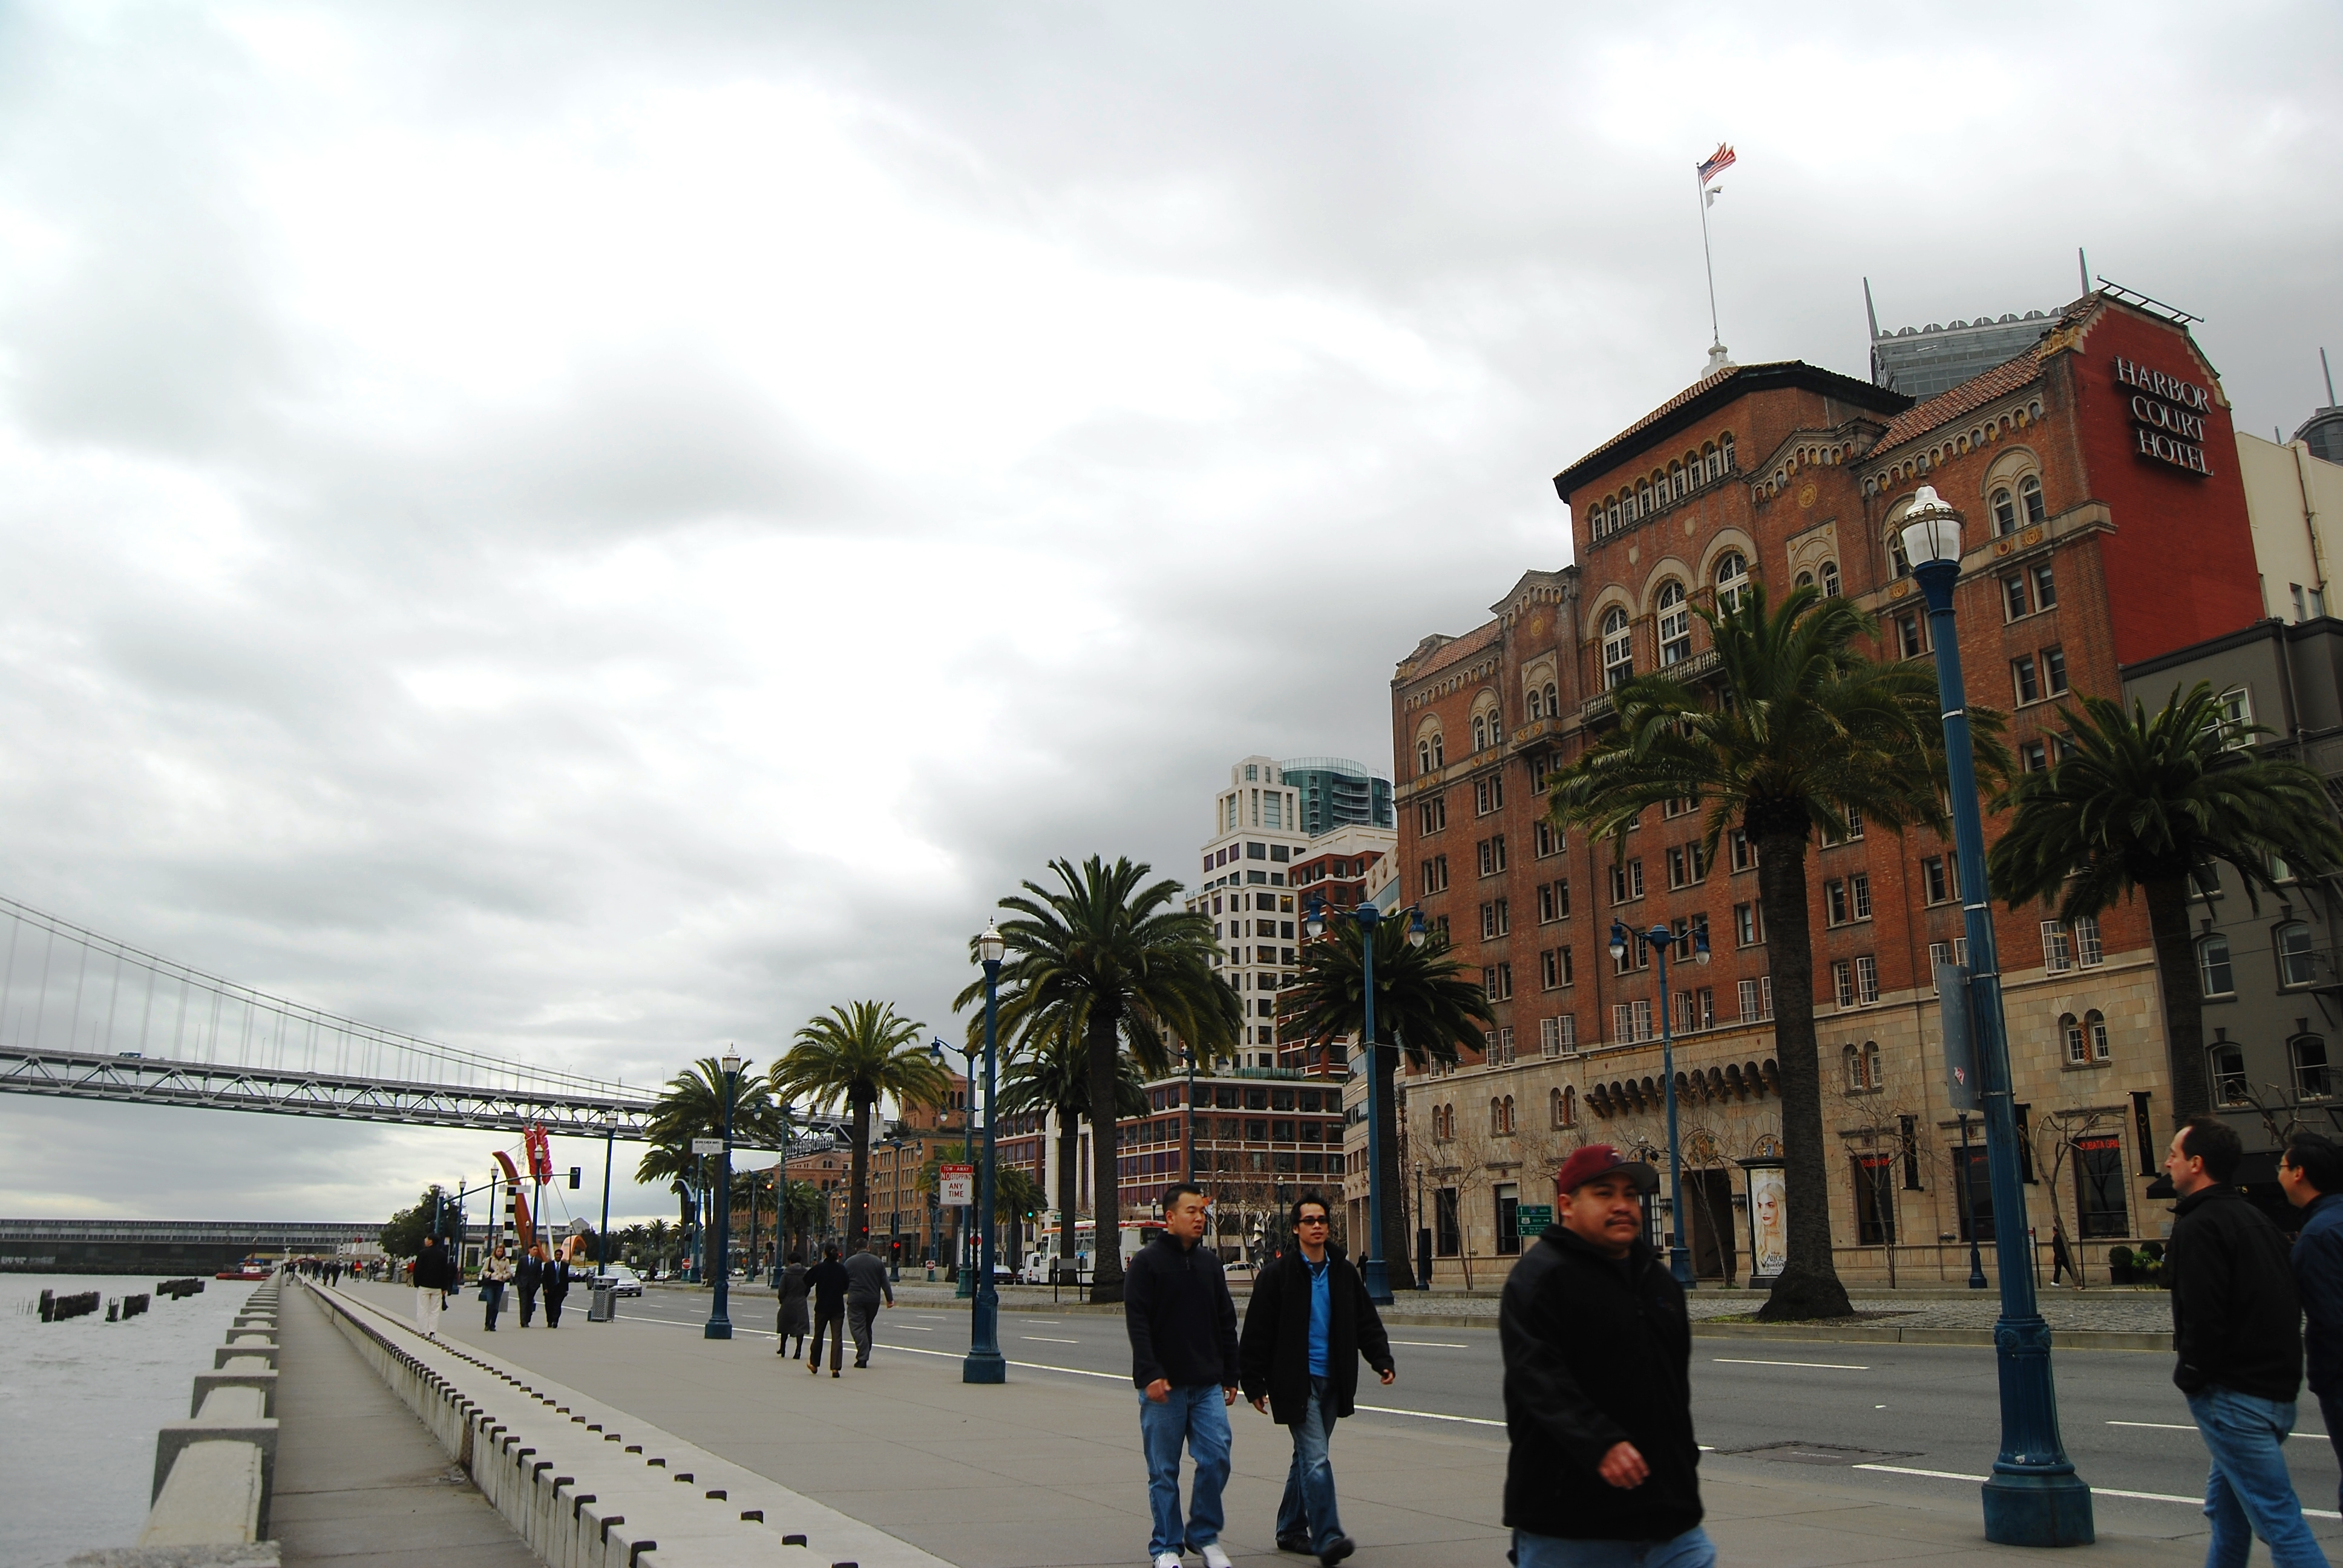 People walk along the Embarcadero in San Francisco on a cloudy day